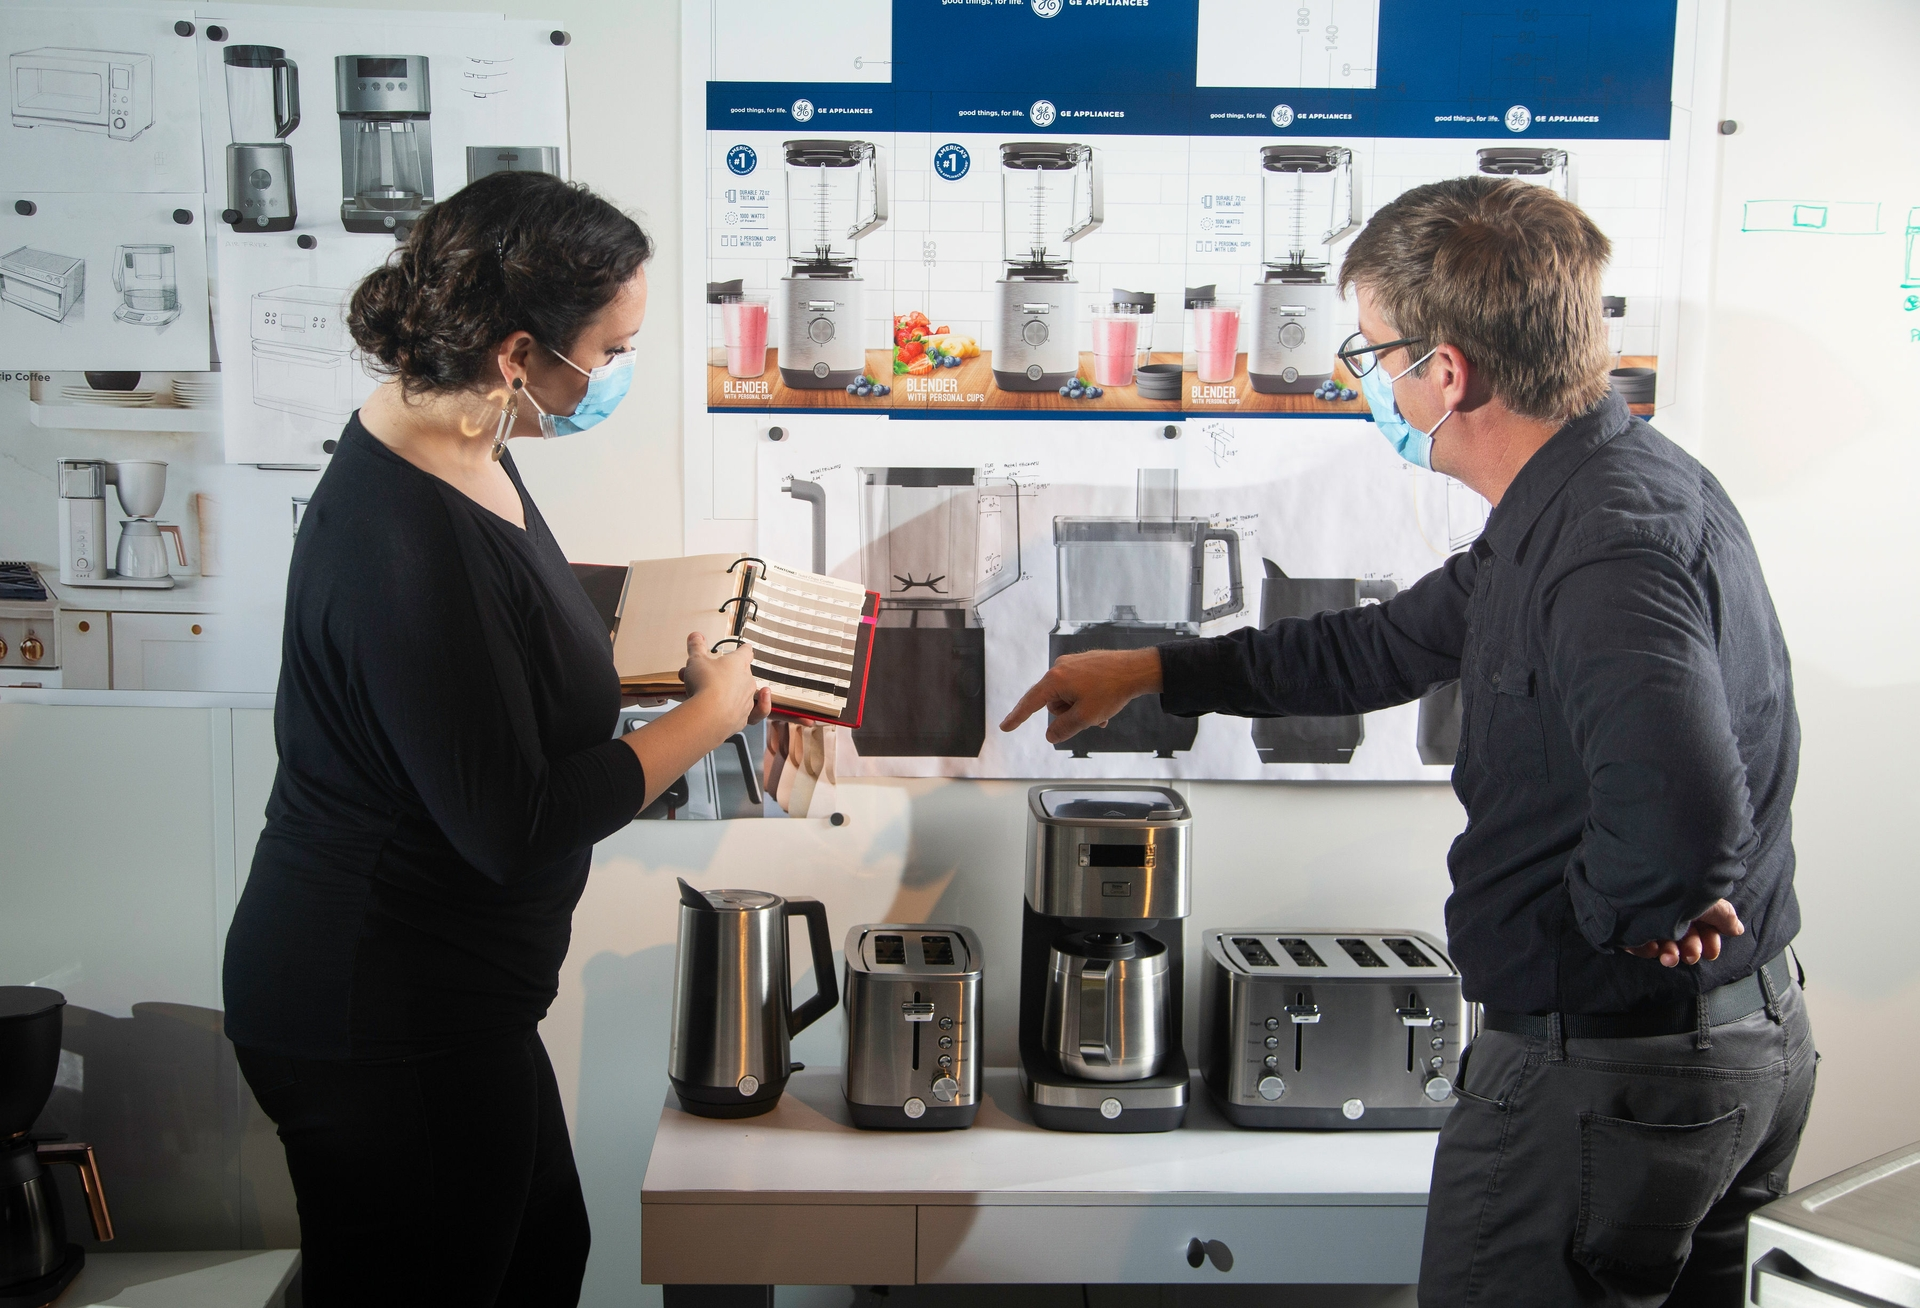 Paul Haney Works with His Industrial Design Team to Hone Sleek Designs of New GE Appliance Products from the Small Appliance Division